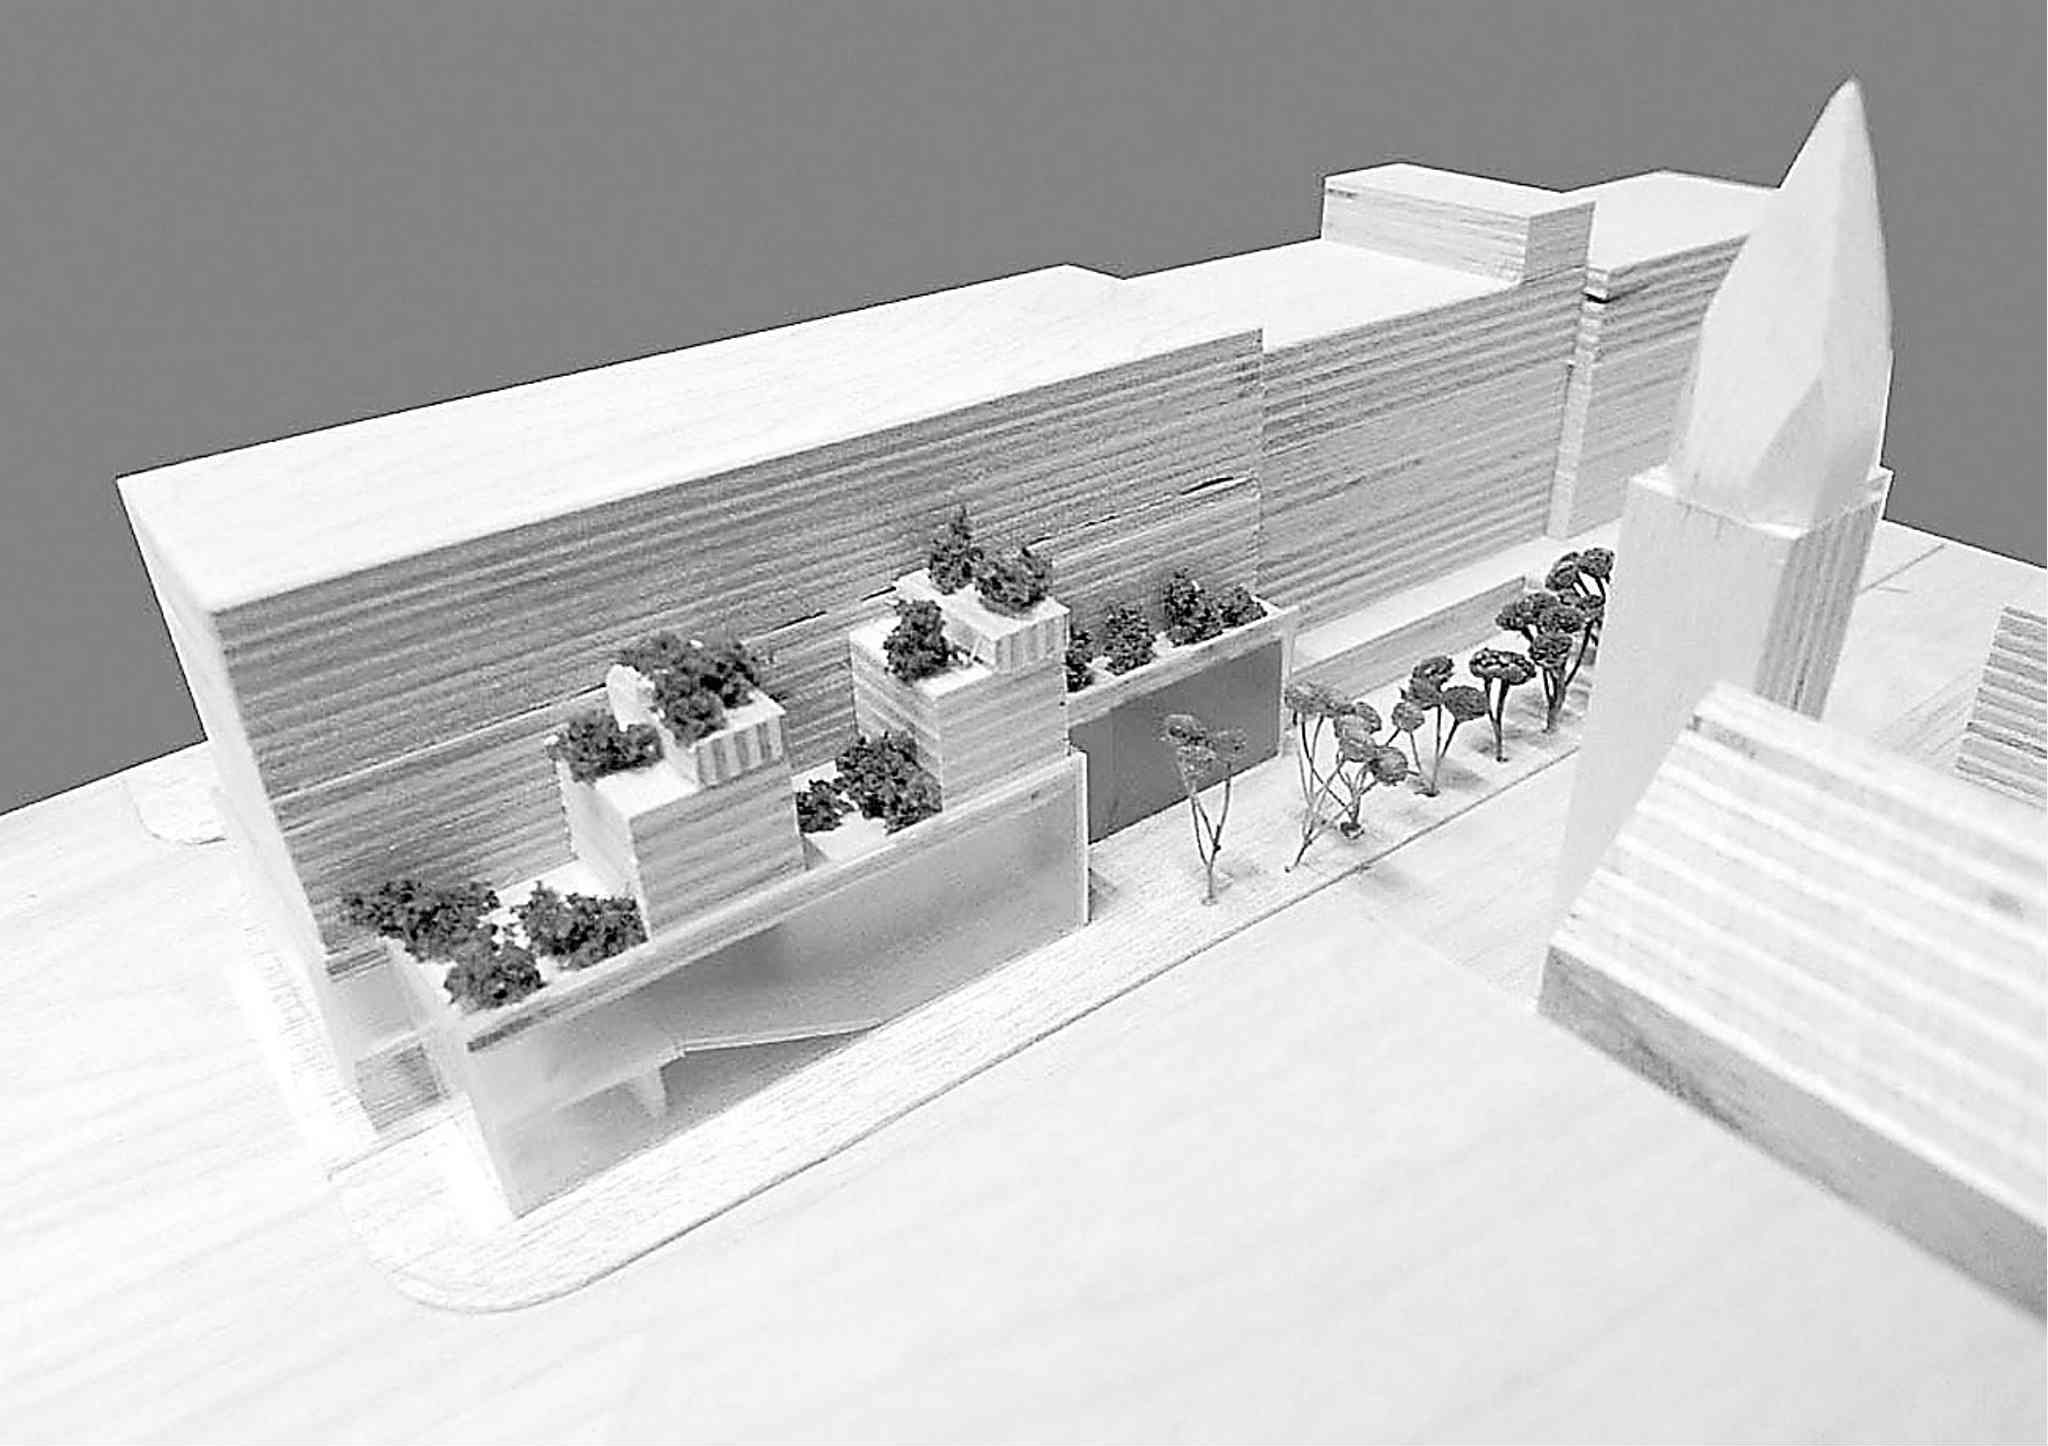 COHLMEYER ARCHITECTURE LTD.